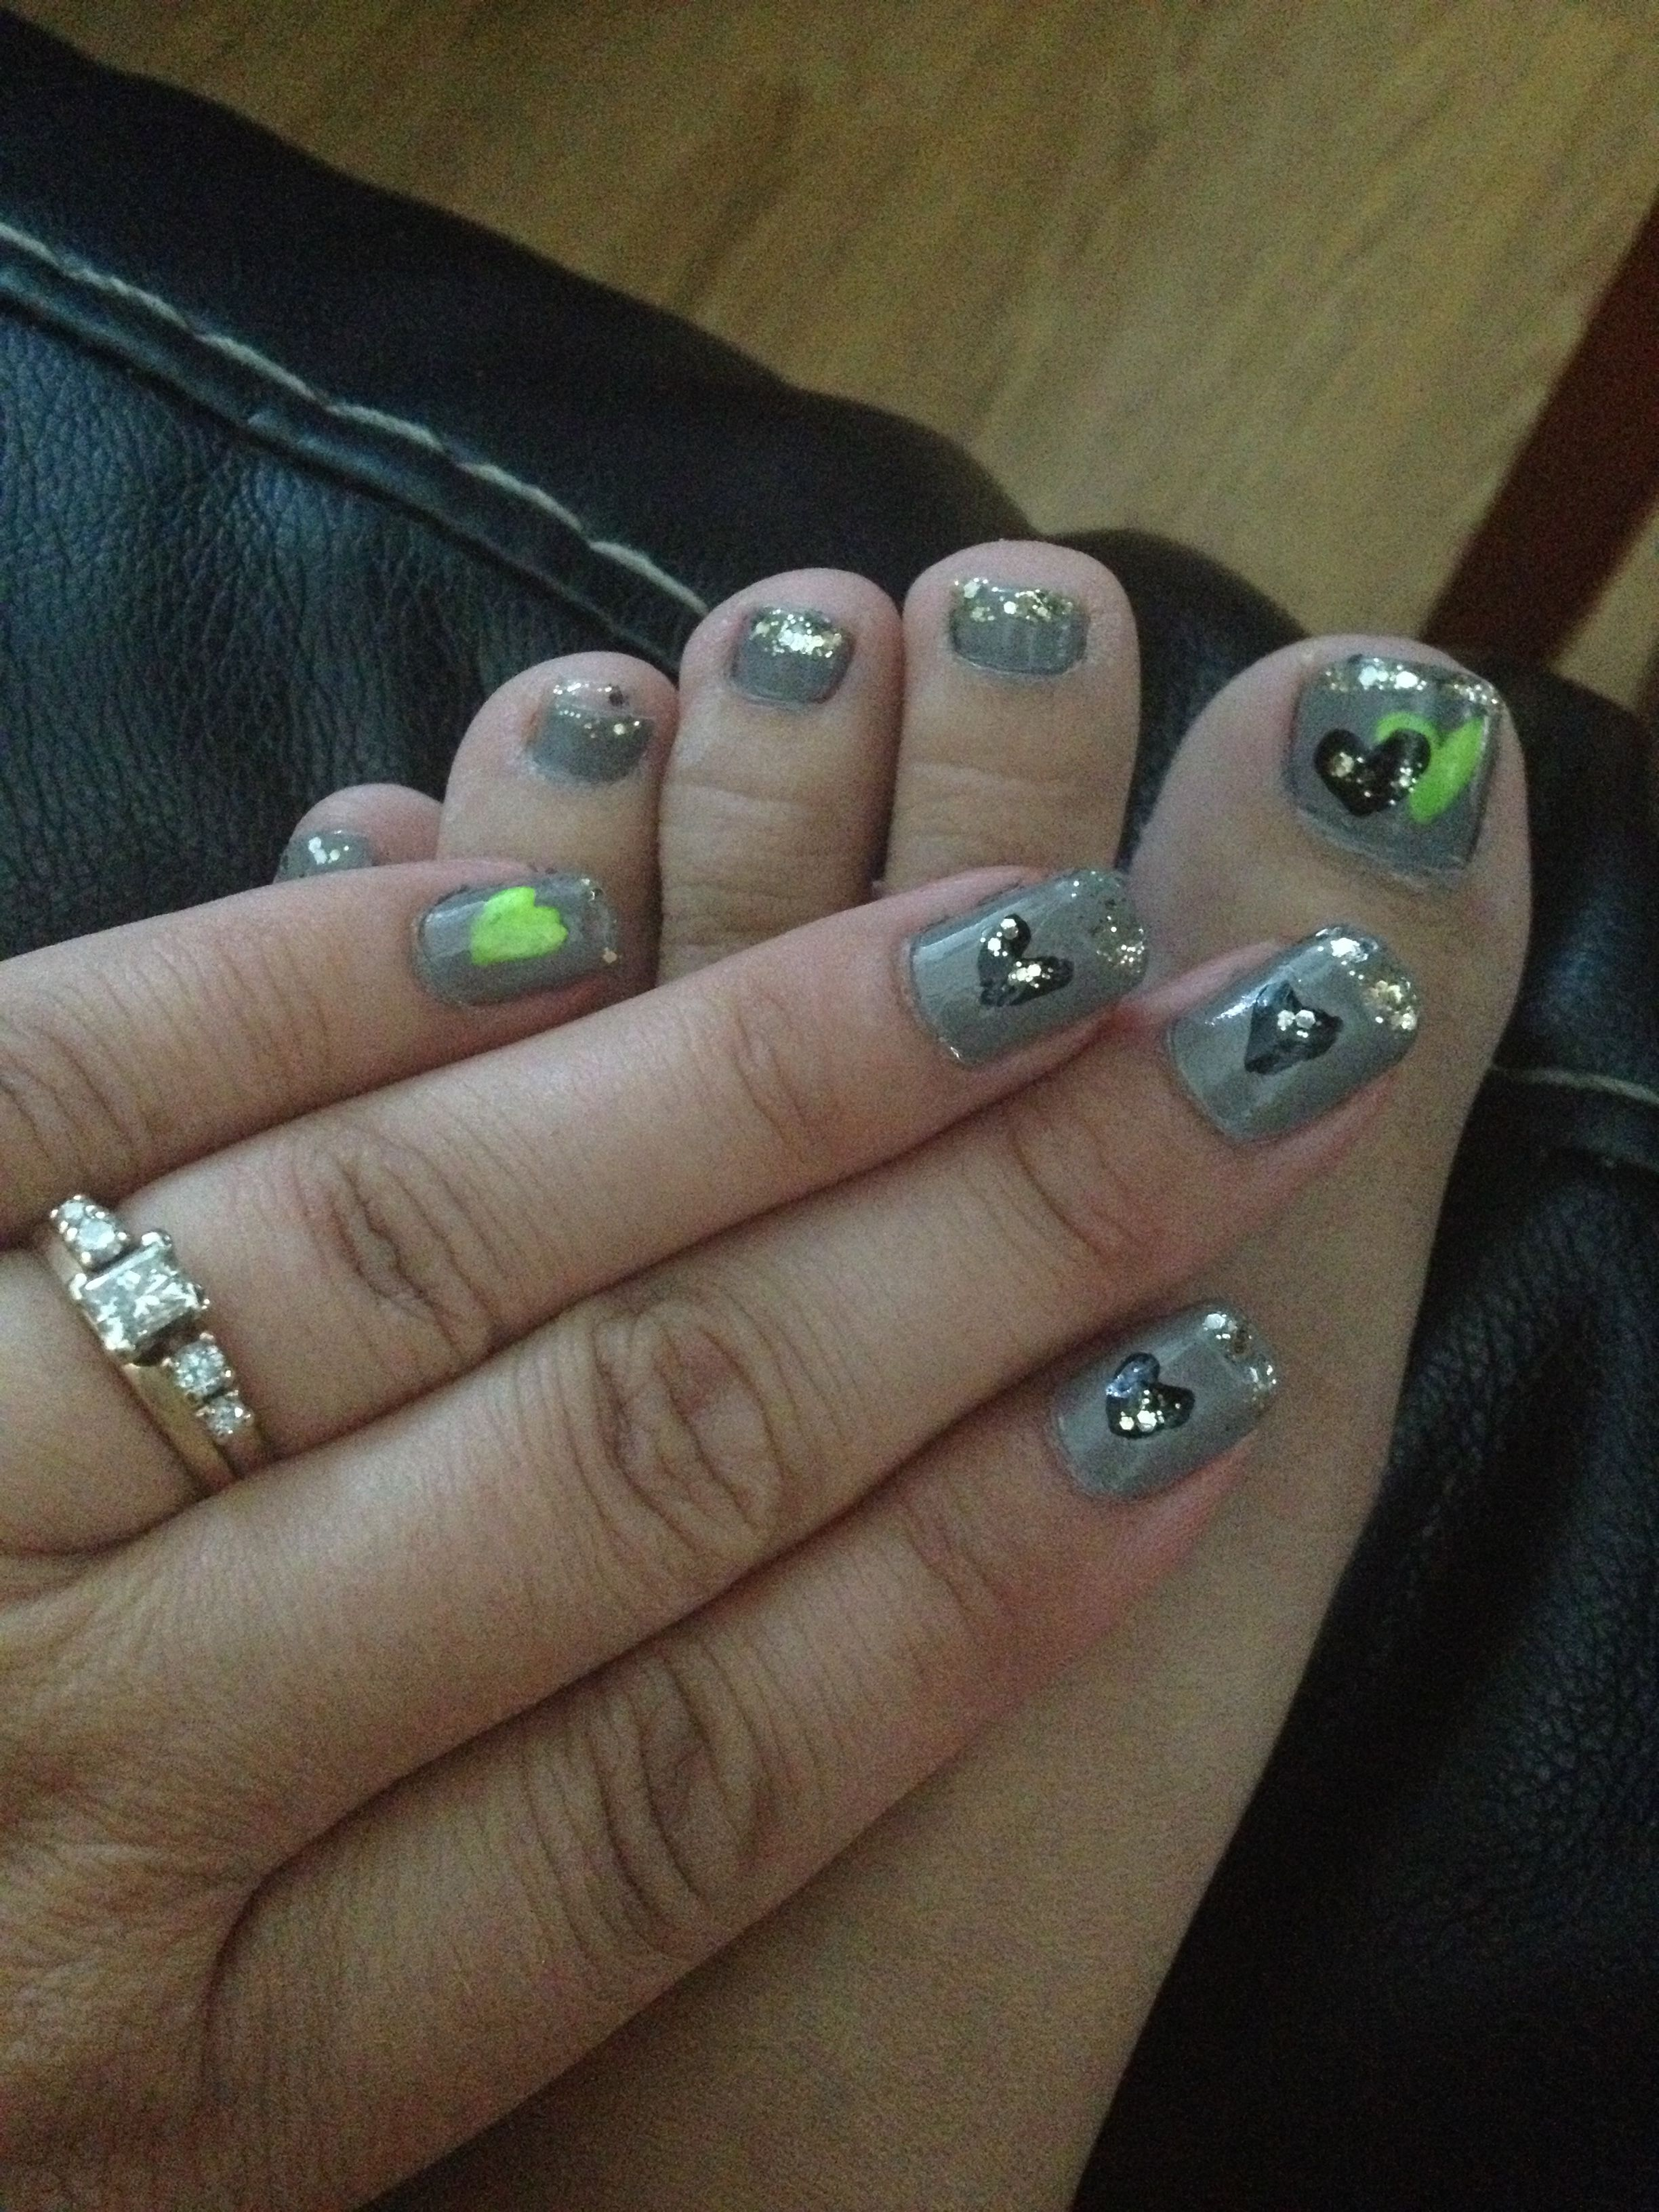 Gray nails with neon lime green hearts and black hearts tipped with gold glitter